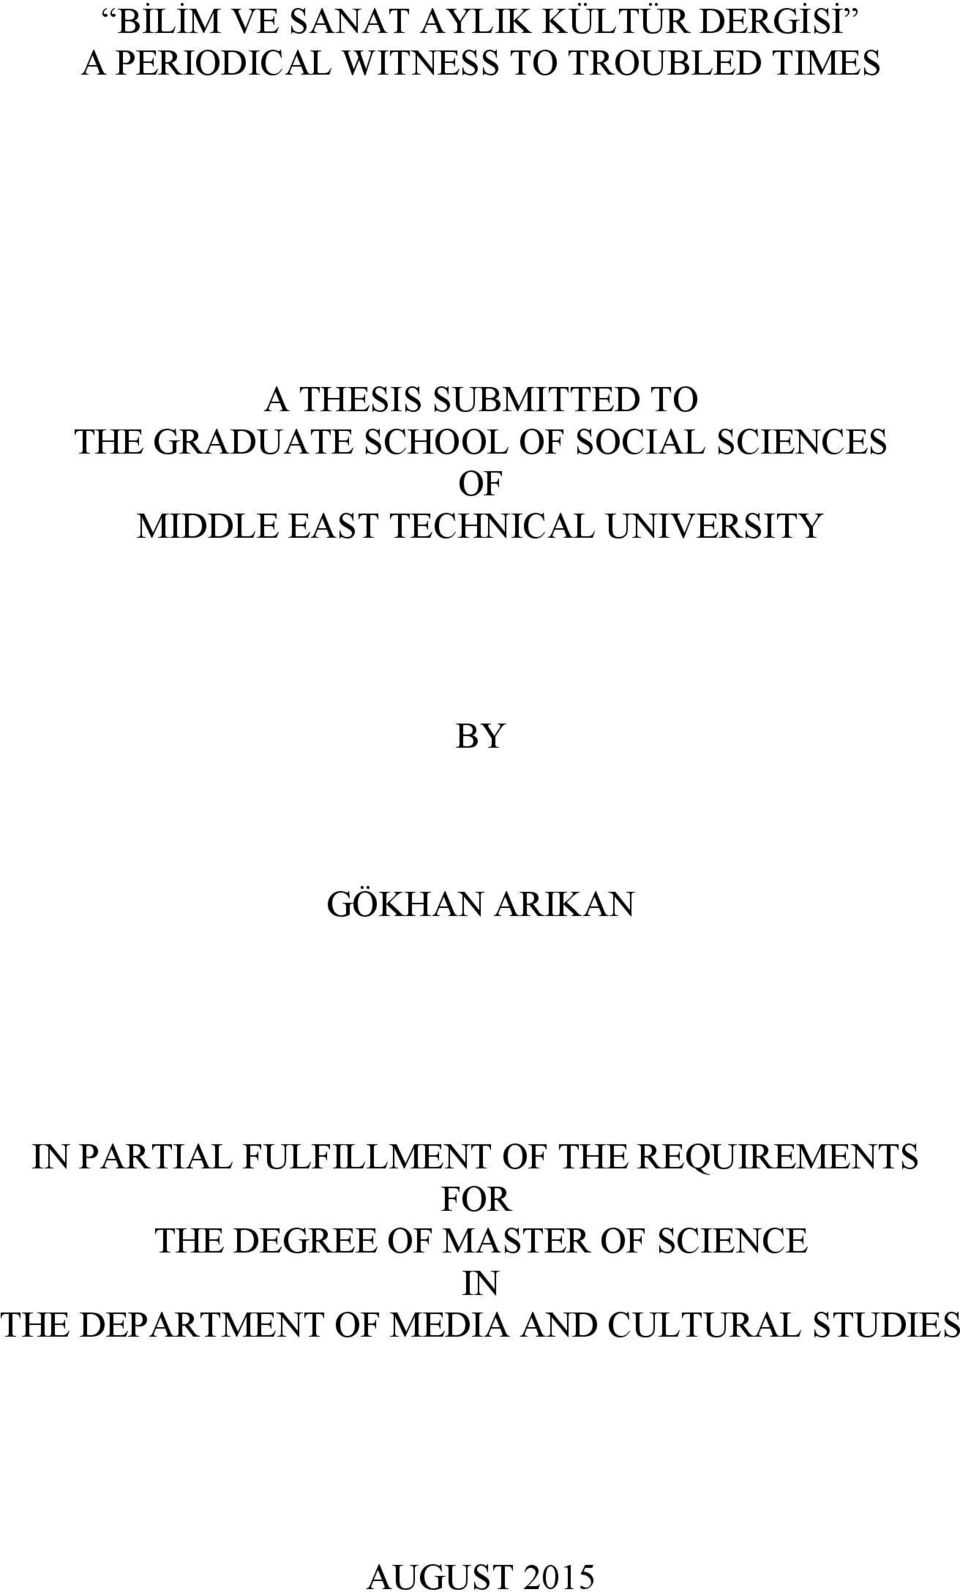 TECHNICAL UNIVERSITY BY GÖKHAN ARIKAN IN PARTIAL FULFILLMENT OF THE REQUIREMENTS